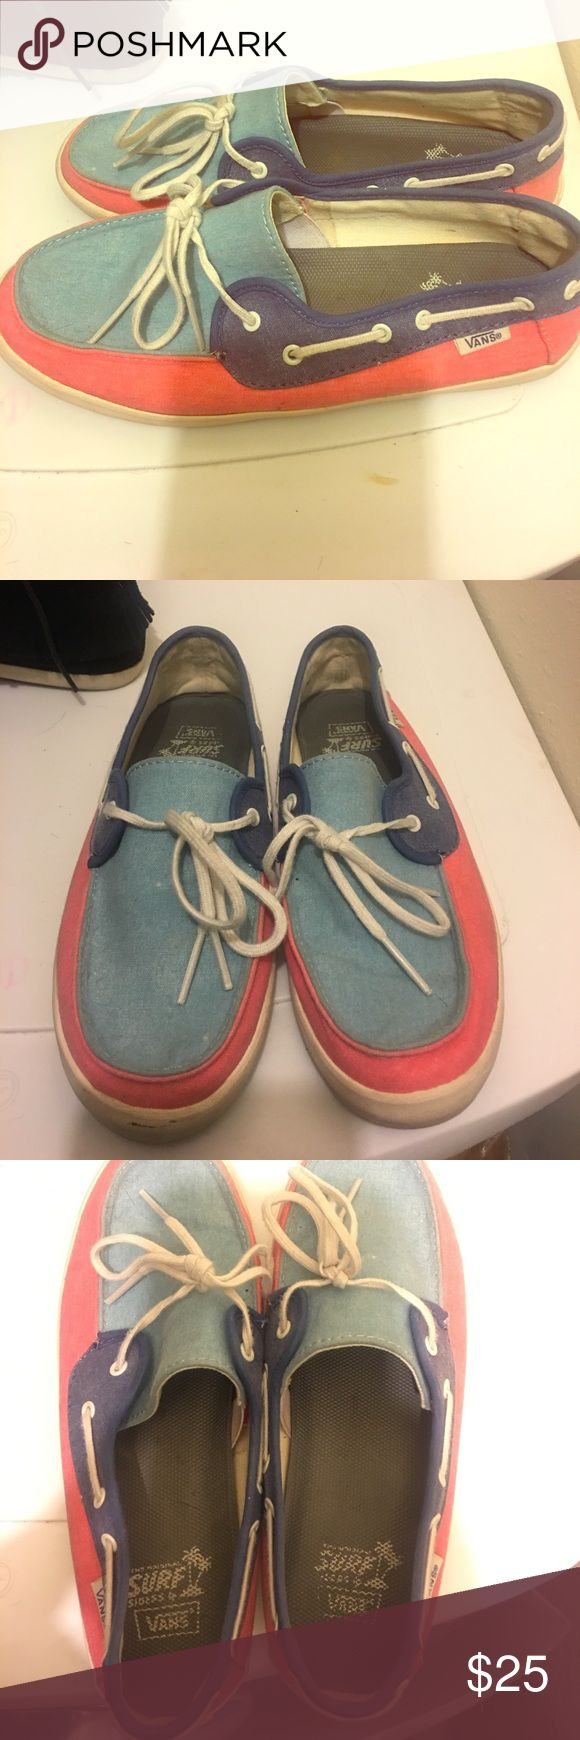 Vans Surf Light and dark denim with coral Vans. Very very cute and extremely comfortable. They are just too small for me. Worn twice! Vans Shoes Athletic Shoes